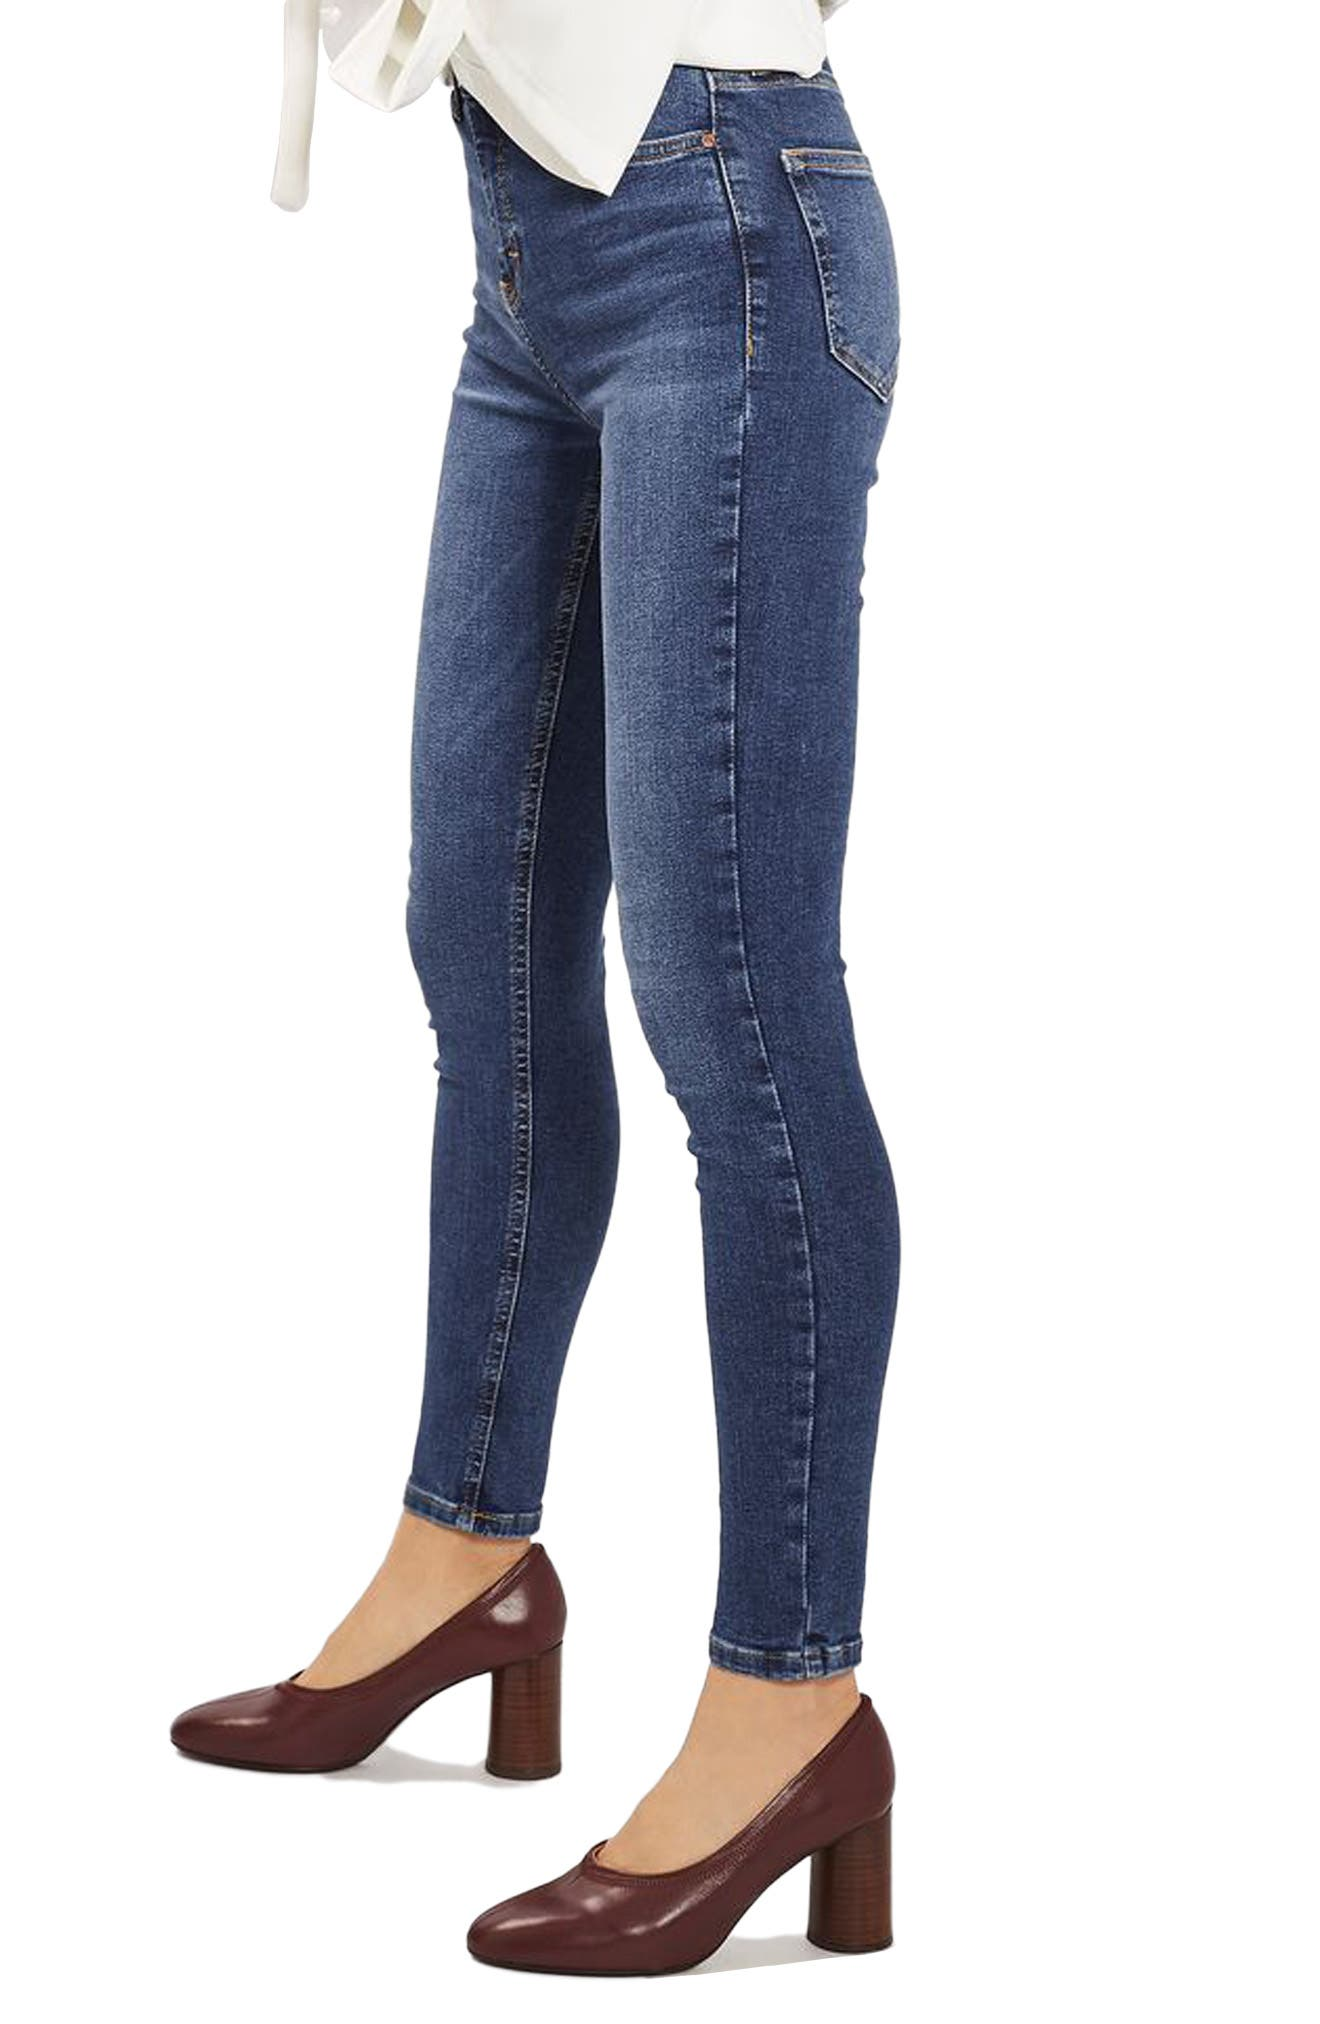 Jamie Indigo High Waist Skinny Jeans,                             Main thumbnail 1, color,                             Indigo